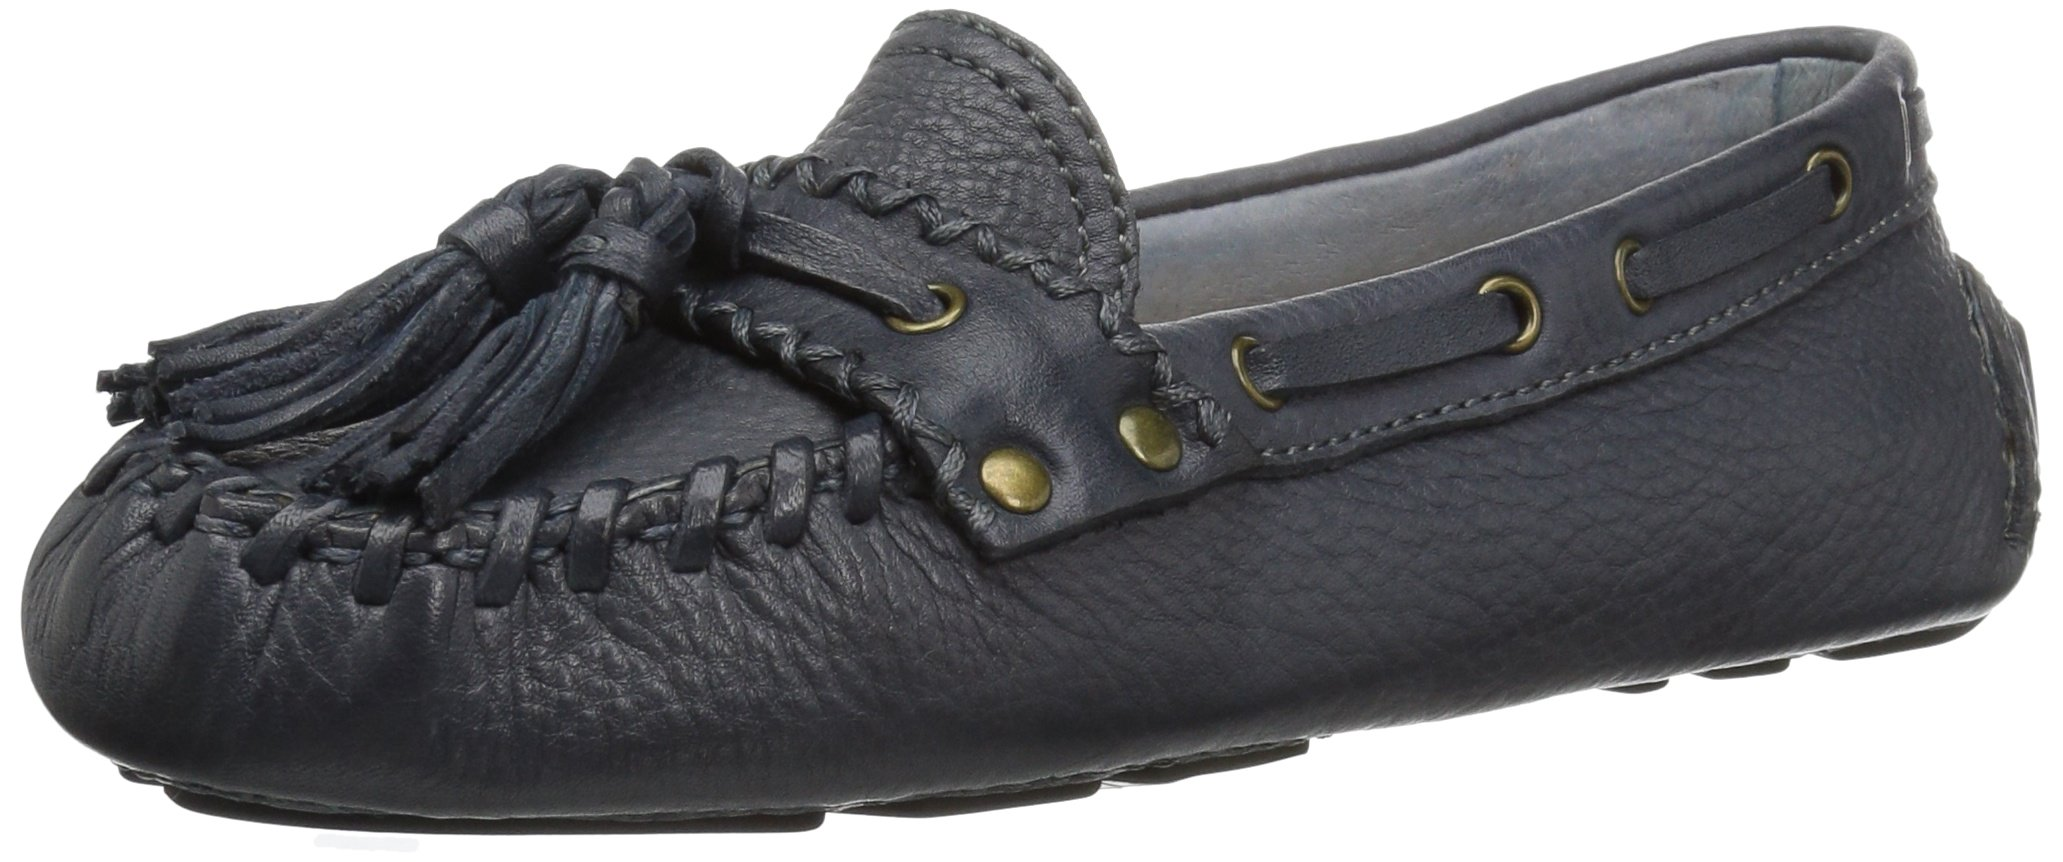 Patricia Nash Women's Domenica Driving Style Loafer, Oxford Blue, 37 B US by Patricia Nash